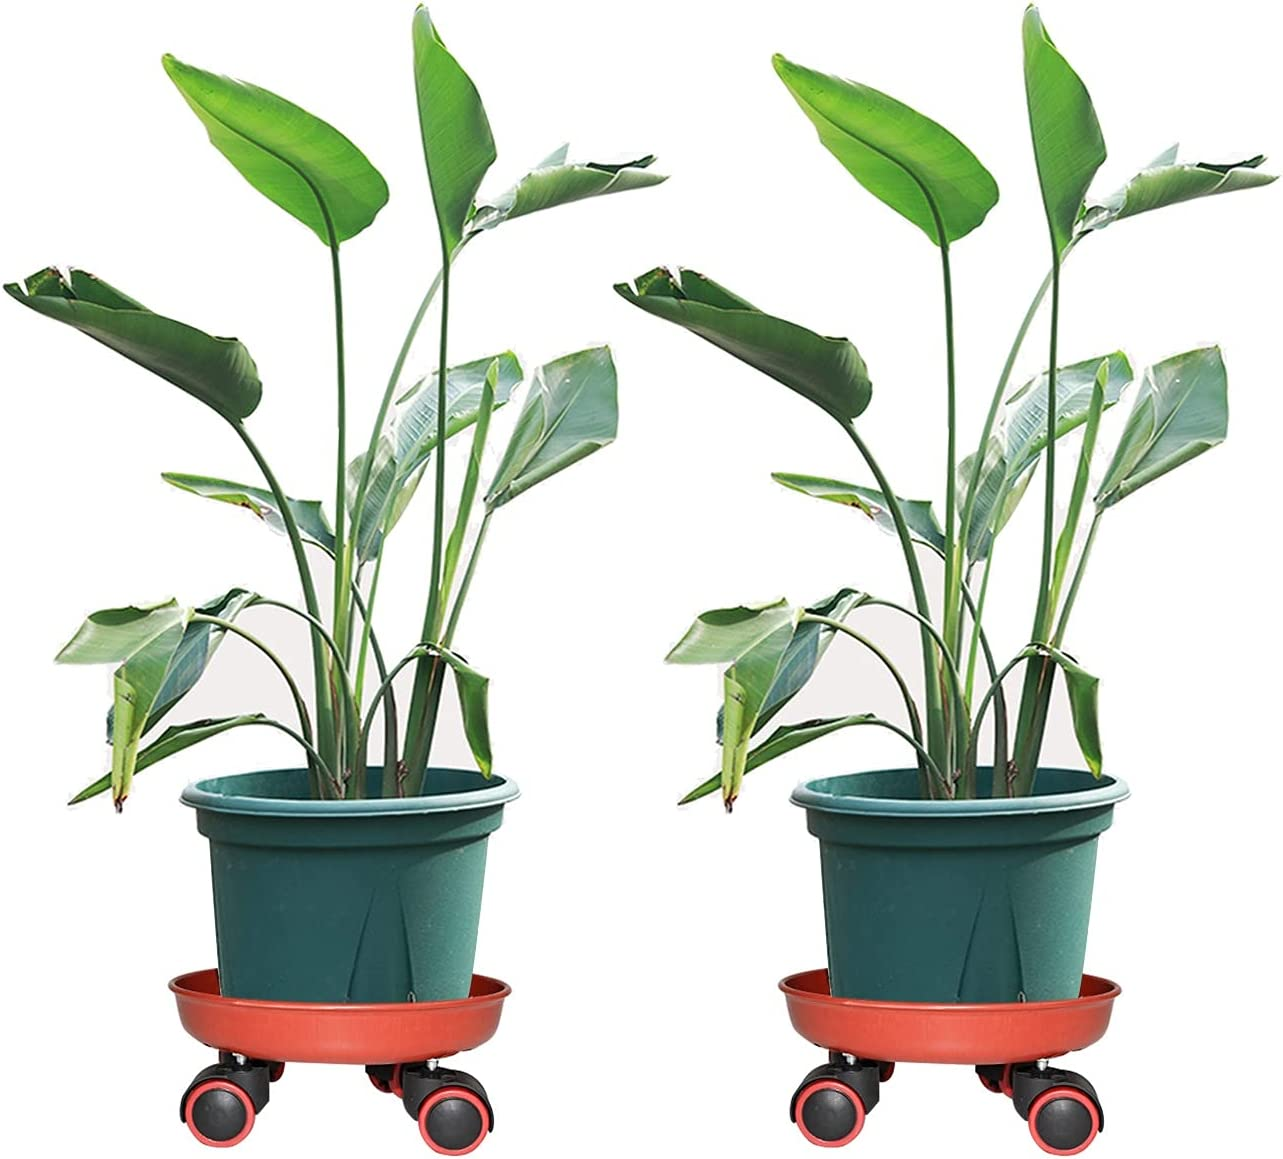 Hymj 2 Pcs Ultra-Cheap Deals Plant Caddy on Wheels Palle Stand Resin Max 74% OFF